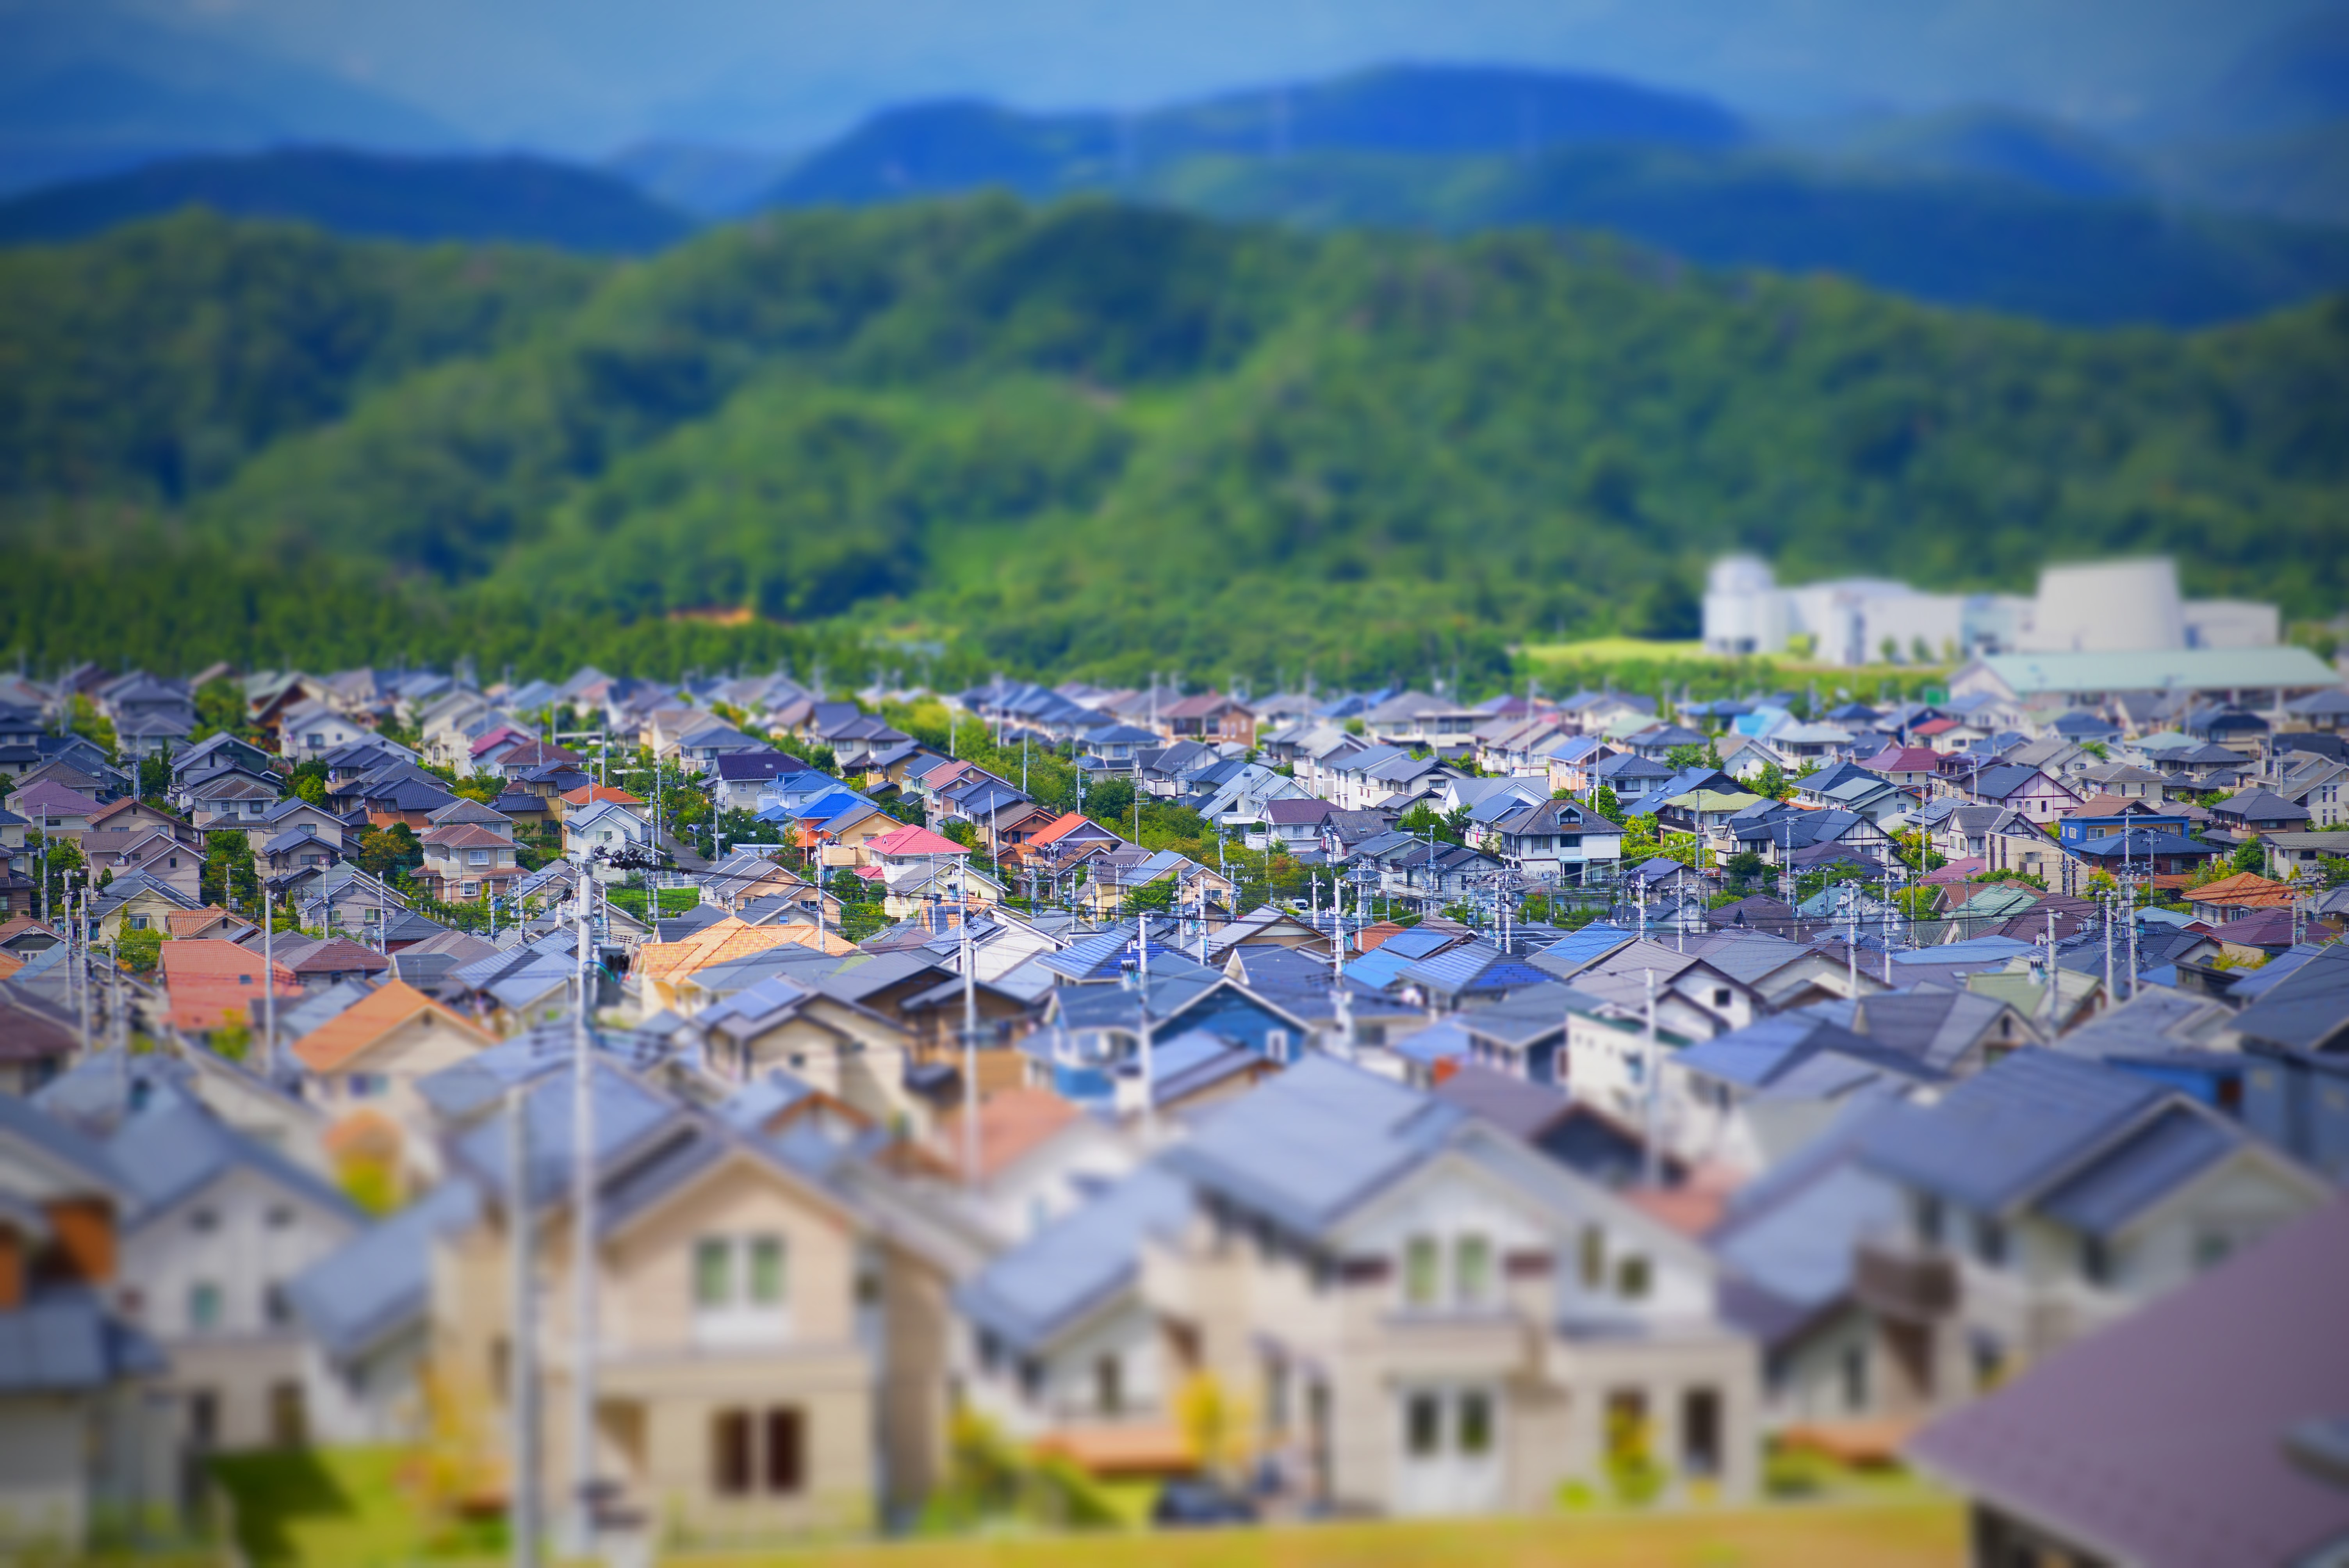 Which cities are the greatest users of solar power?